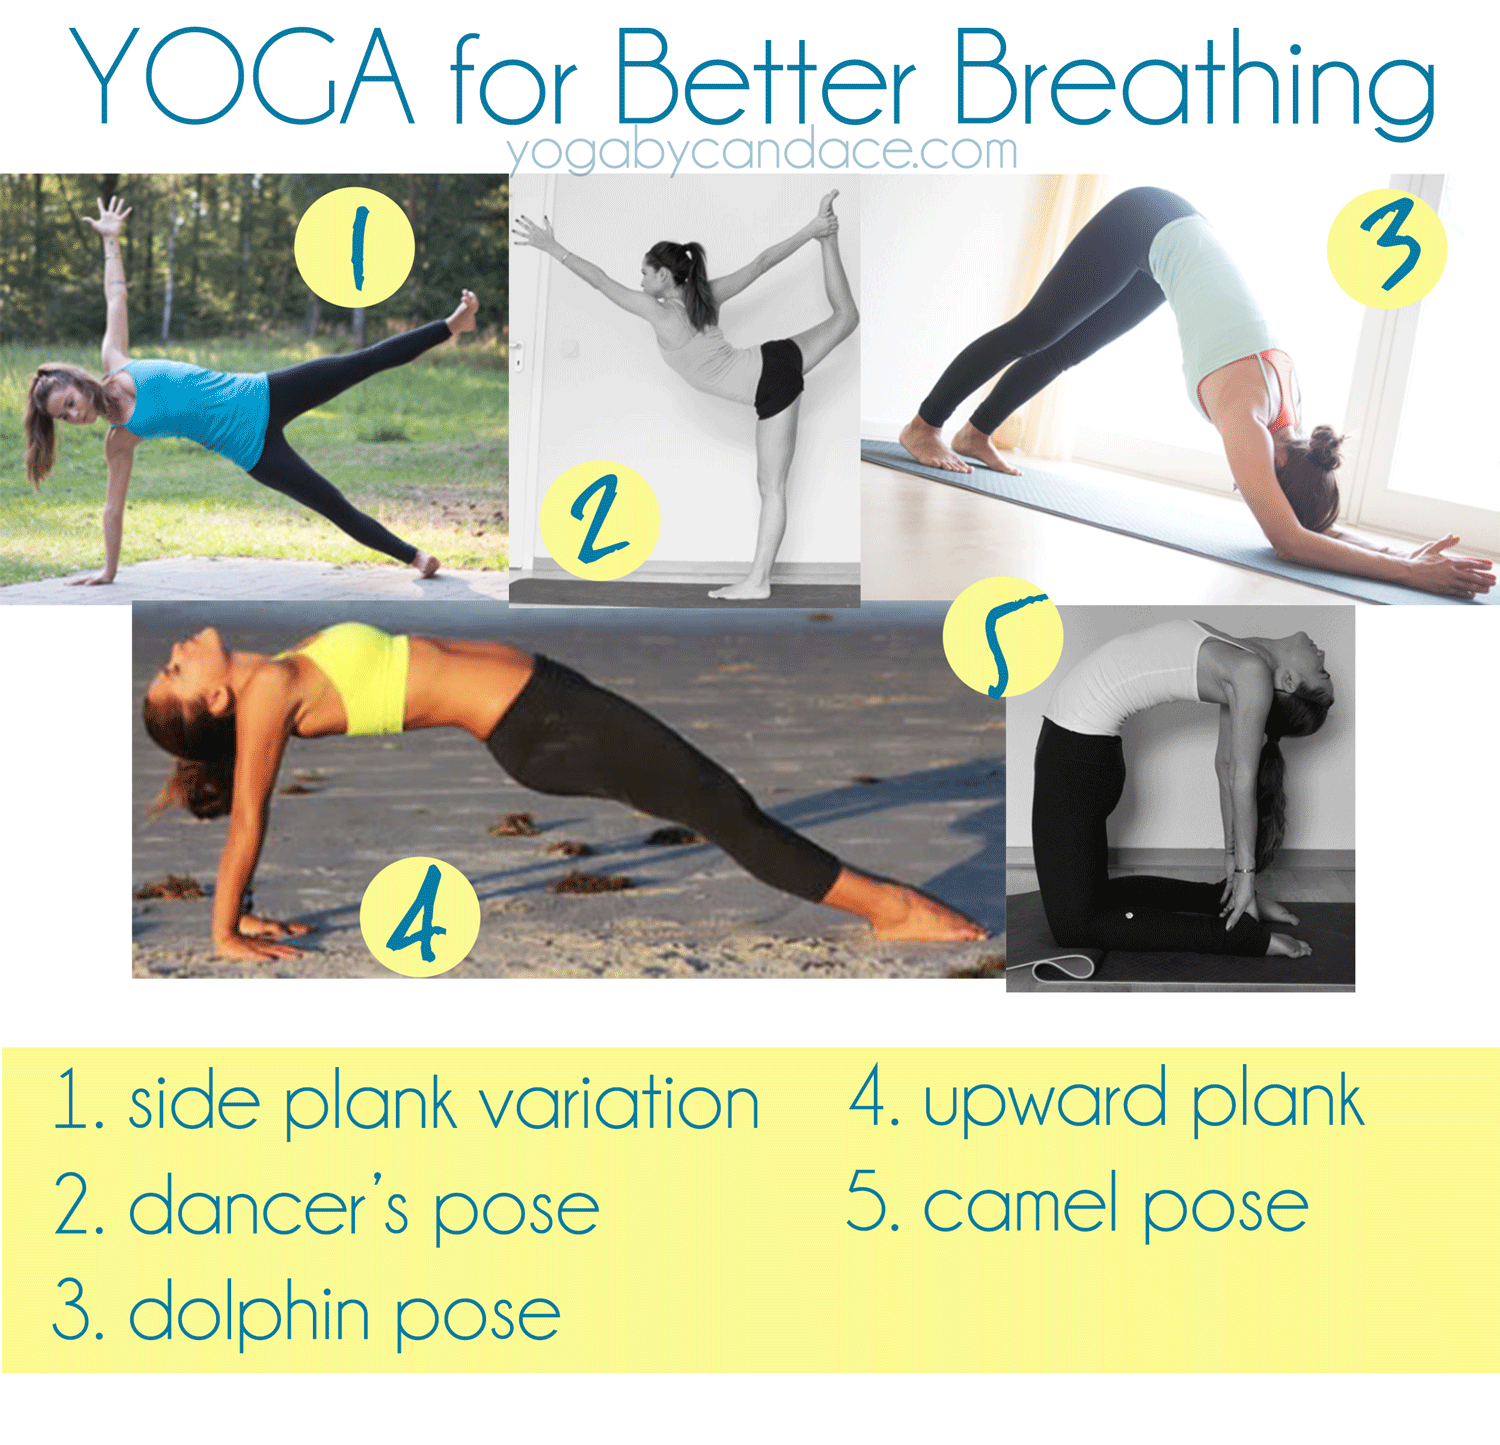 Pin it! 5 Yoga poses for better breathing.